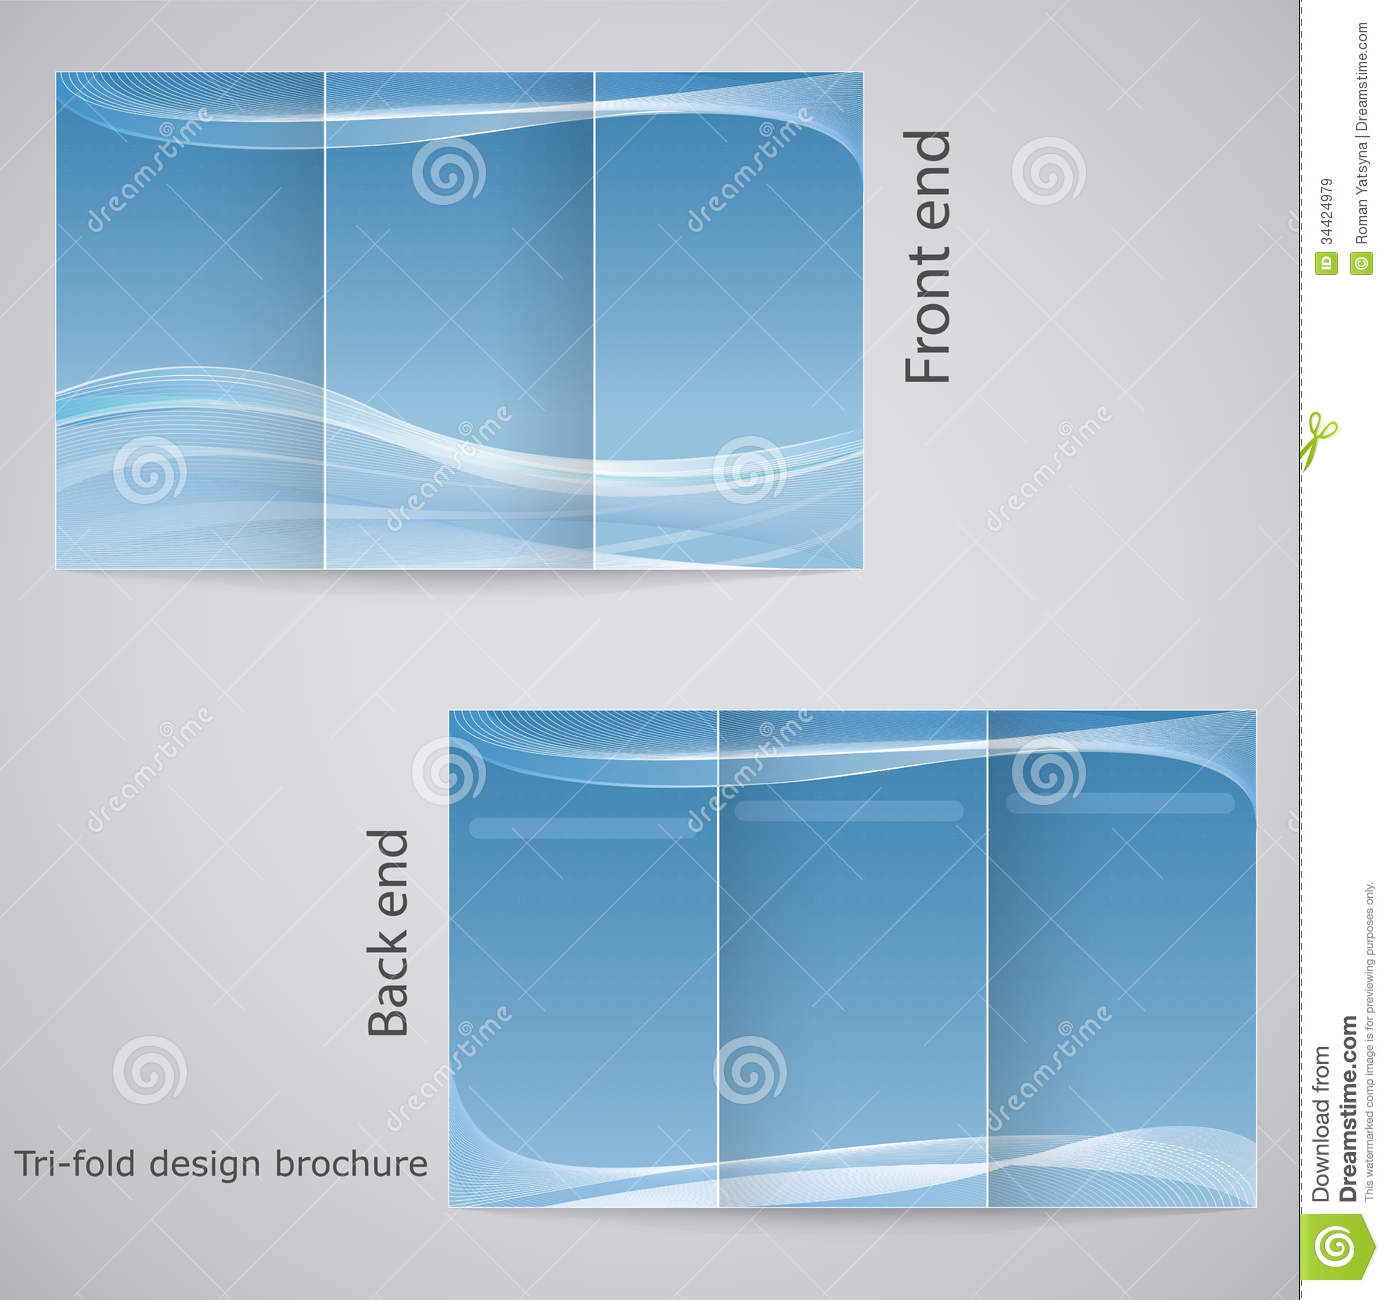 17 tri fold brochure design templates images tri fold for Free tri fold brochure templates for word